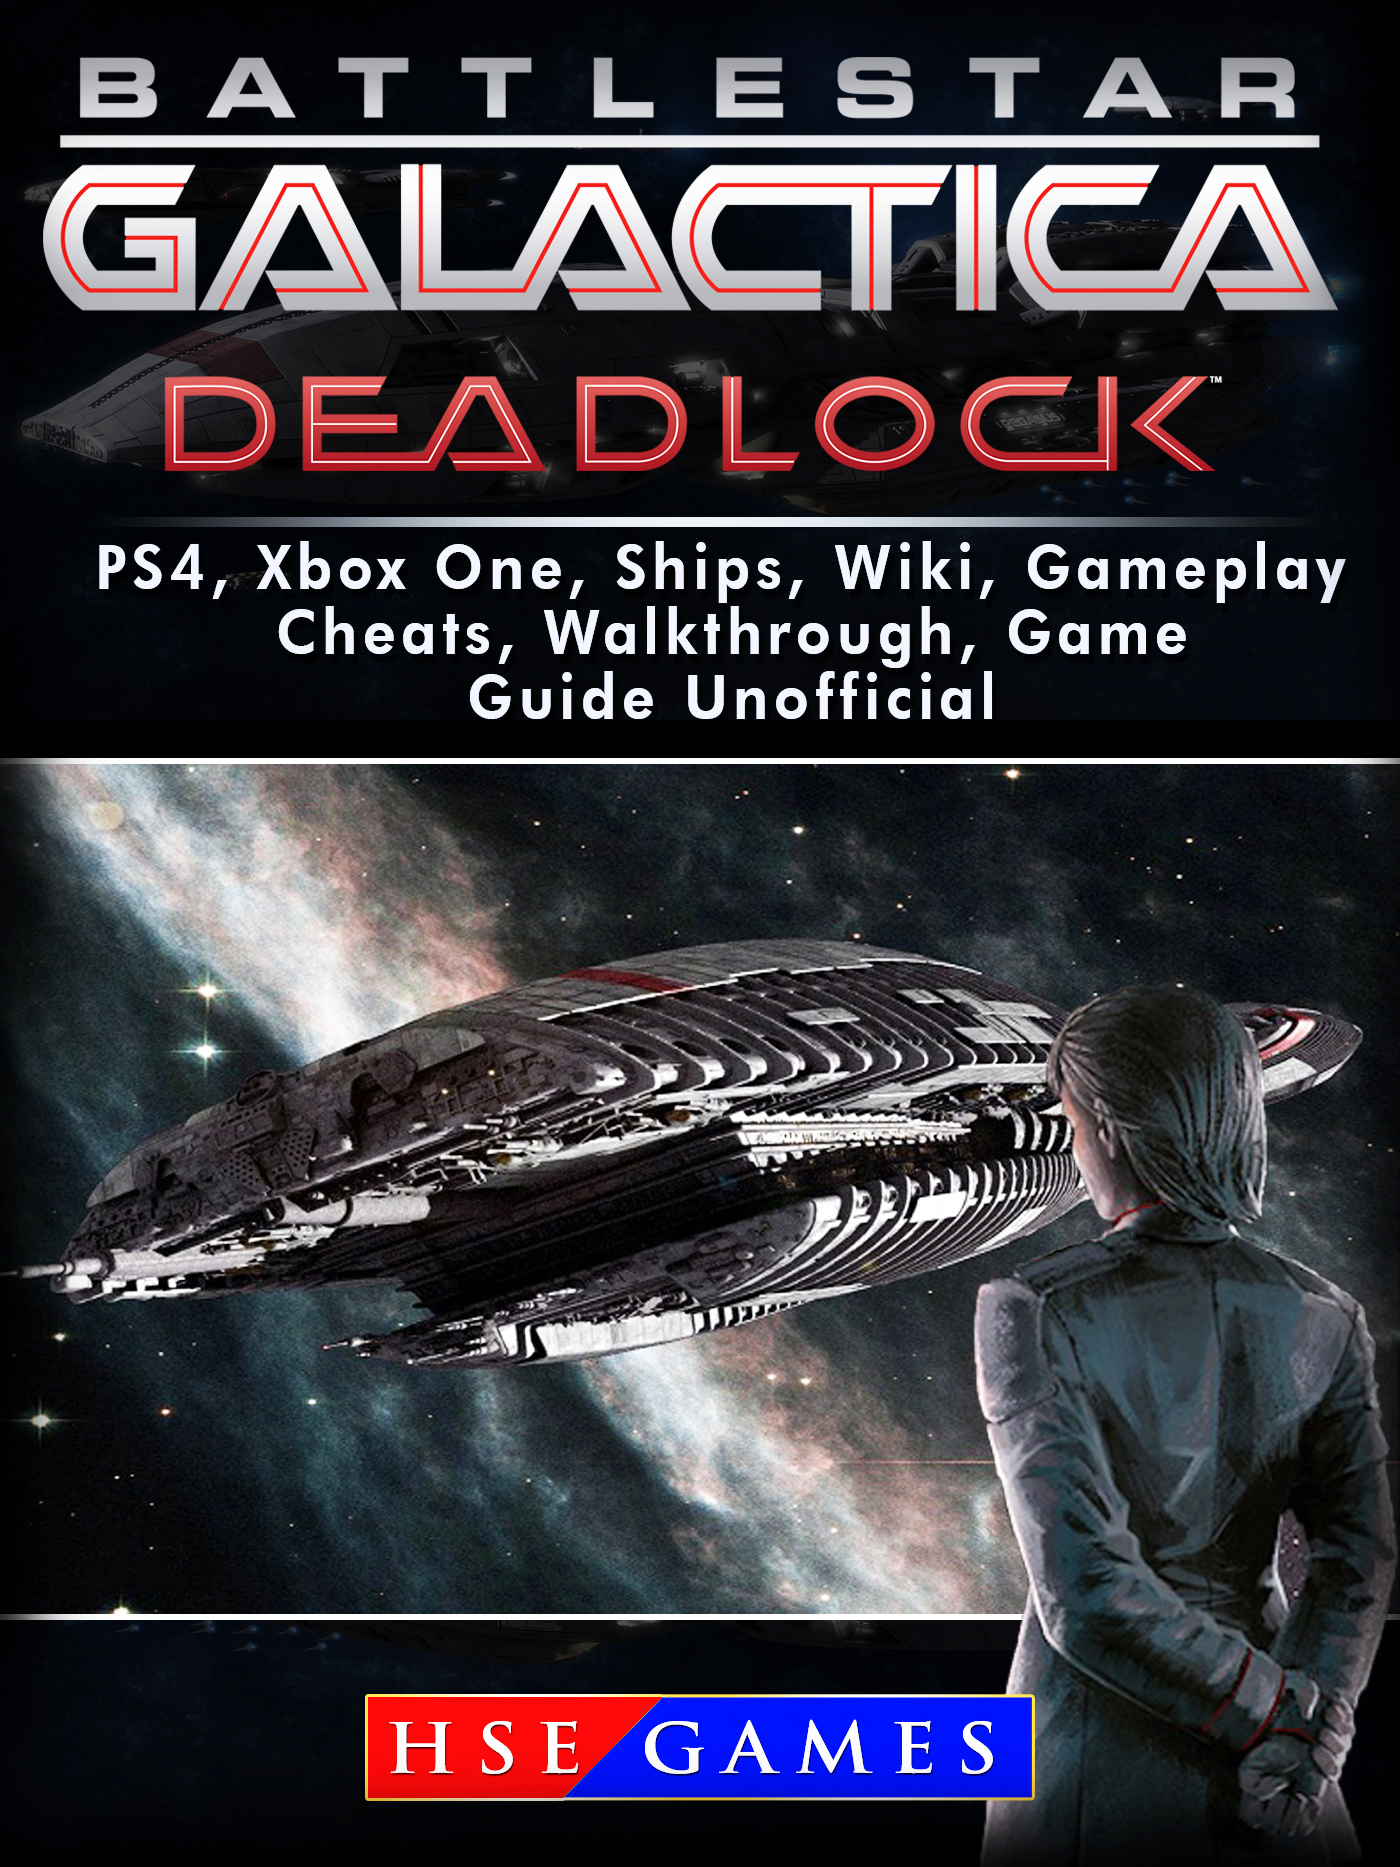 Battlestar Gallactica Deadlock PS4, Xbox One, Ships, Wiki, Gameplay, Cheats, Walkthrough, Game Guide Unofficial By HSE Games